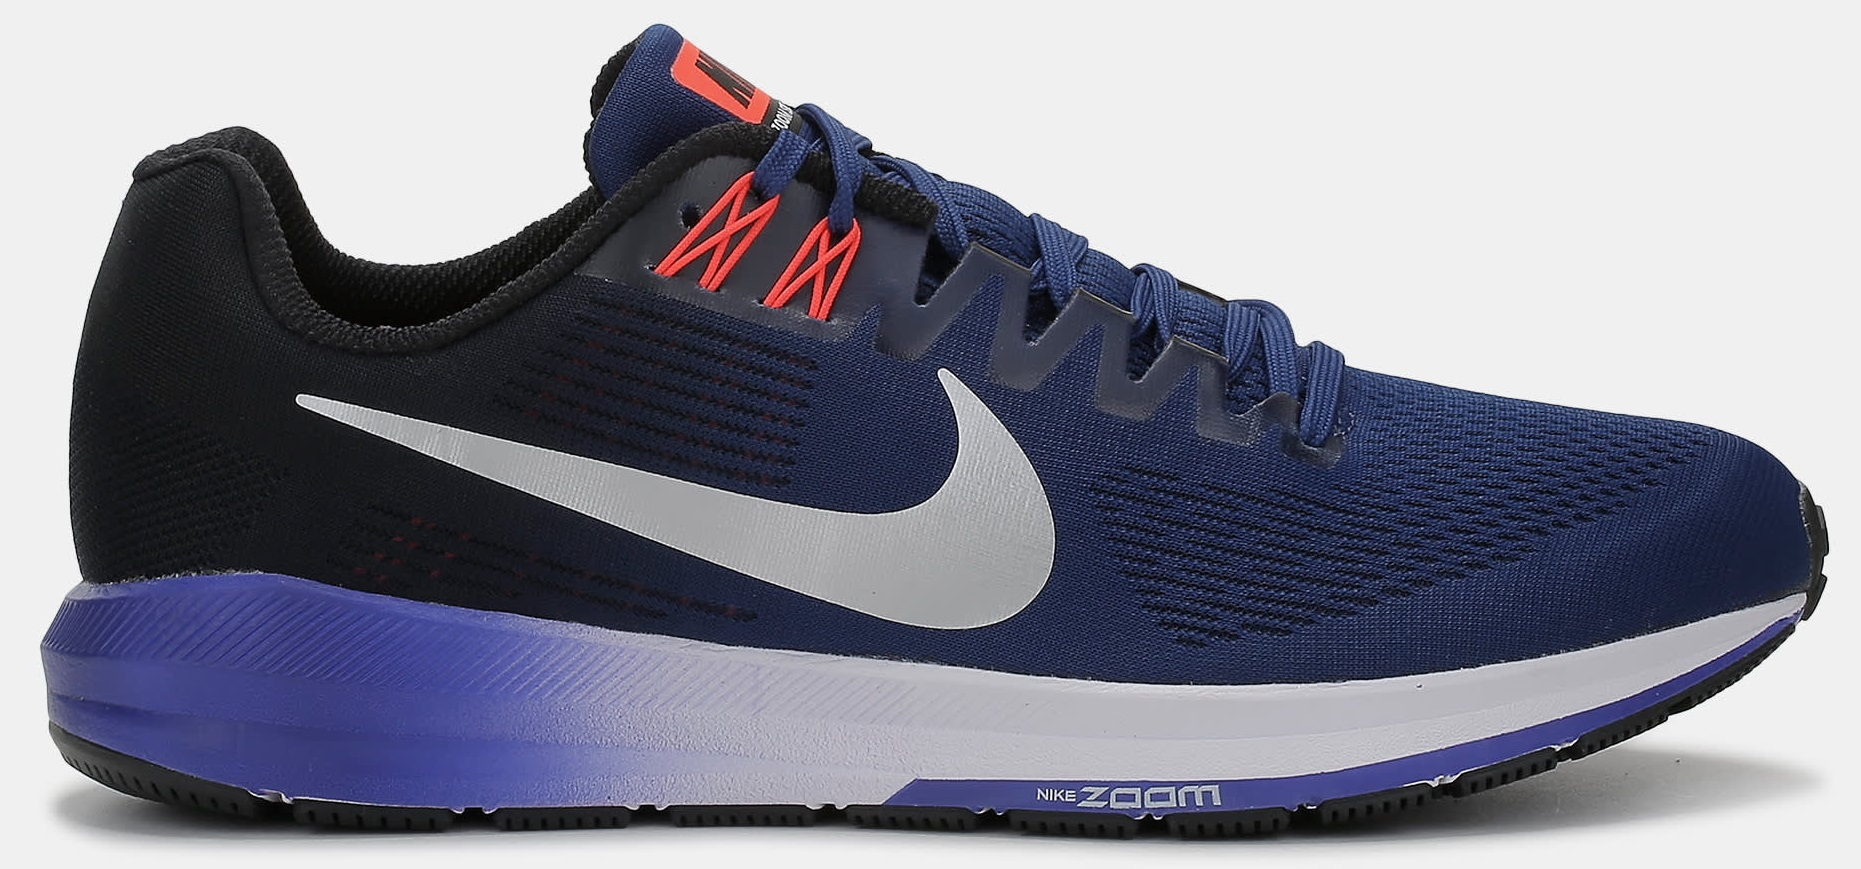 13 Best Long Distance Running Shoes for